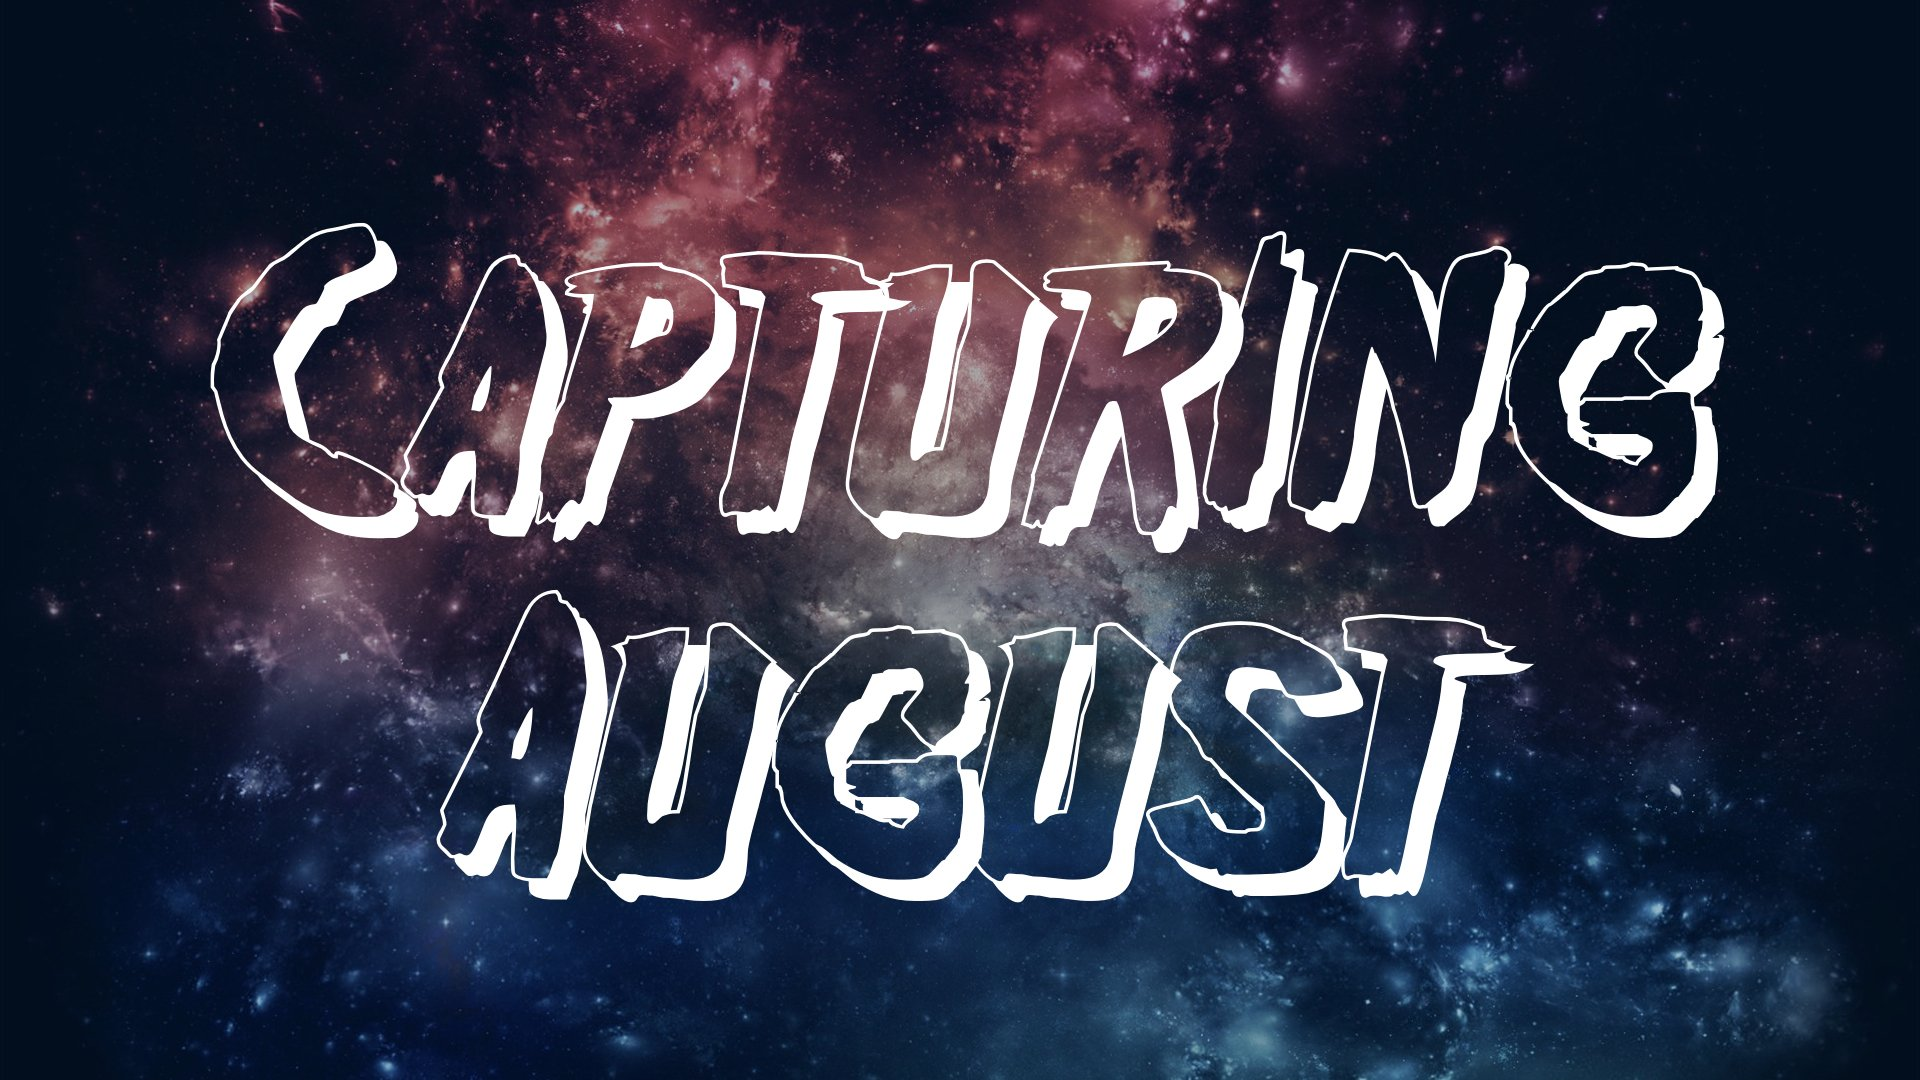 Video: Capturing August